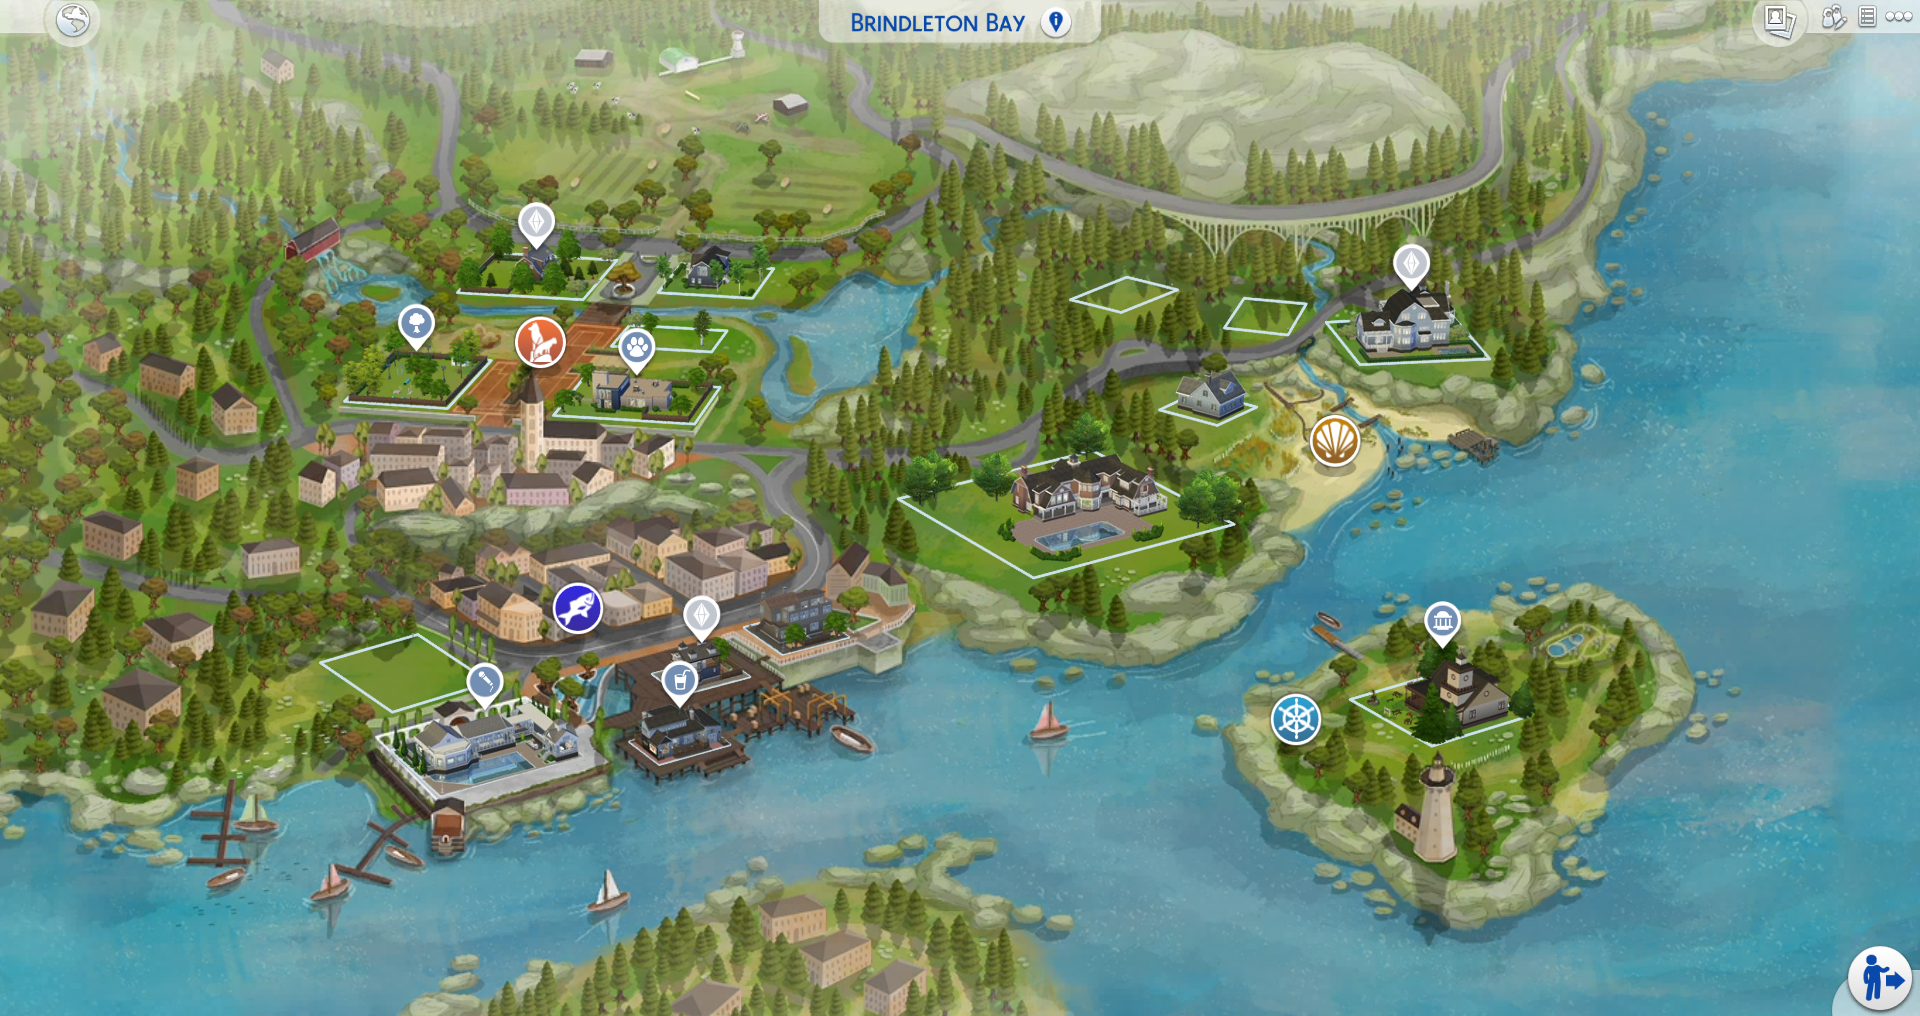 The Sims 4: World Map Replacements for ALL Worlds Now ... Sims Map on sims castaway, sims 3 houses, sims 3 university life cover, sims 3 yacht, sims 3 map, sims 3 zombie apocalypse, sims 3 sunlit tides, sims 3 mods, sims 3 train, sims 3 world's best, sims 3 weather, sims medieval map,